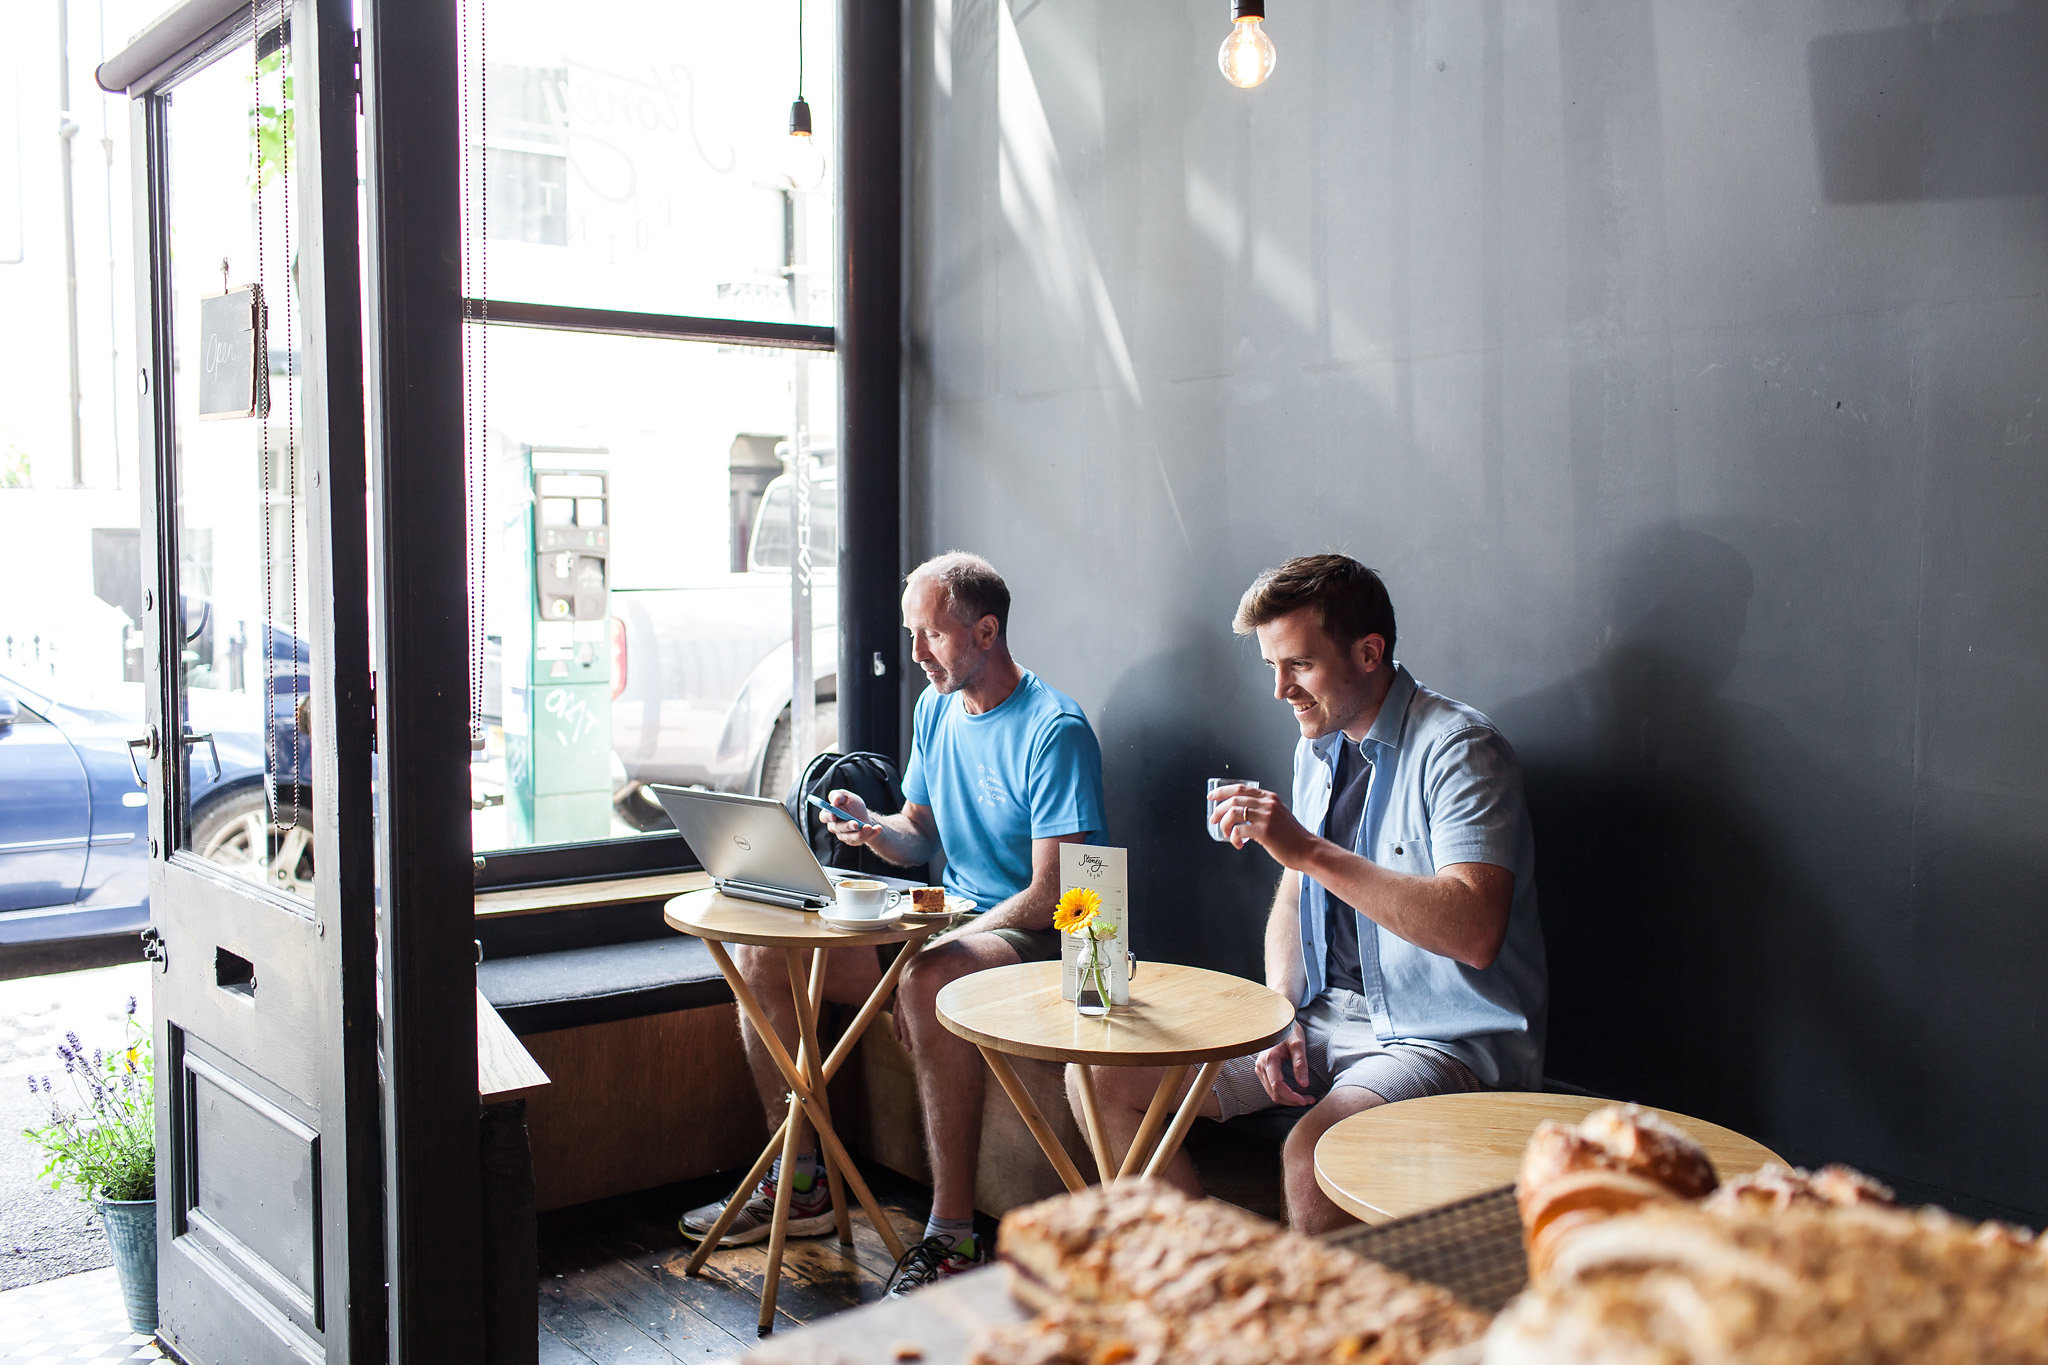 Stoney Point in Brighton is an example of a laptop friendly cafe with good work focus music.